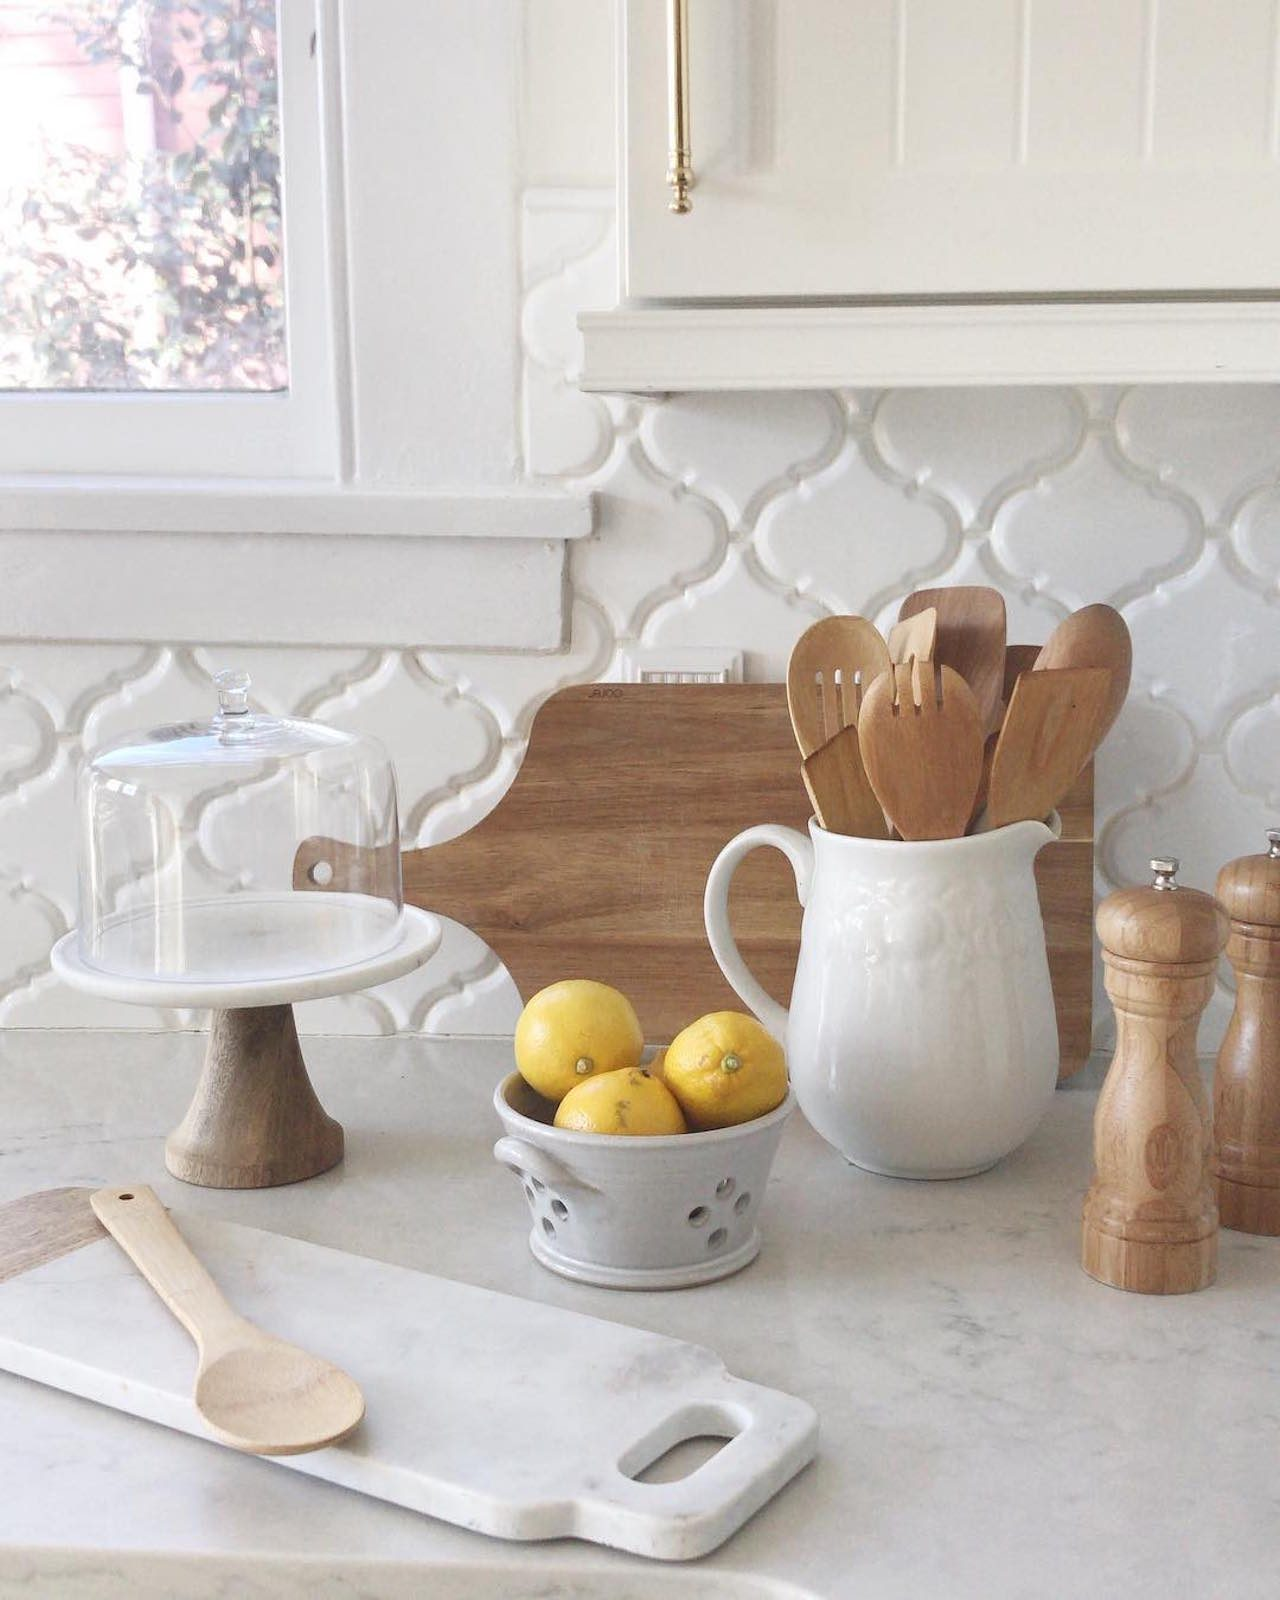 damask white tile backsplash